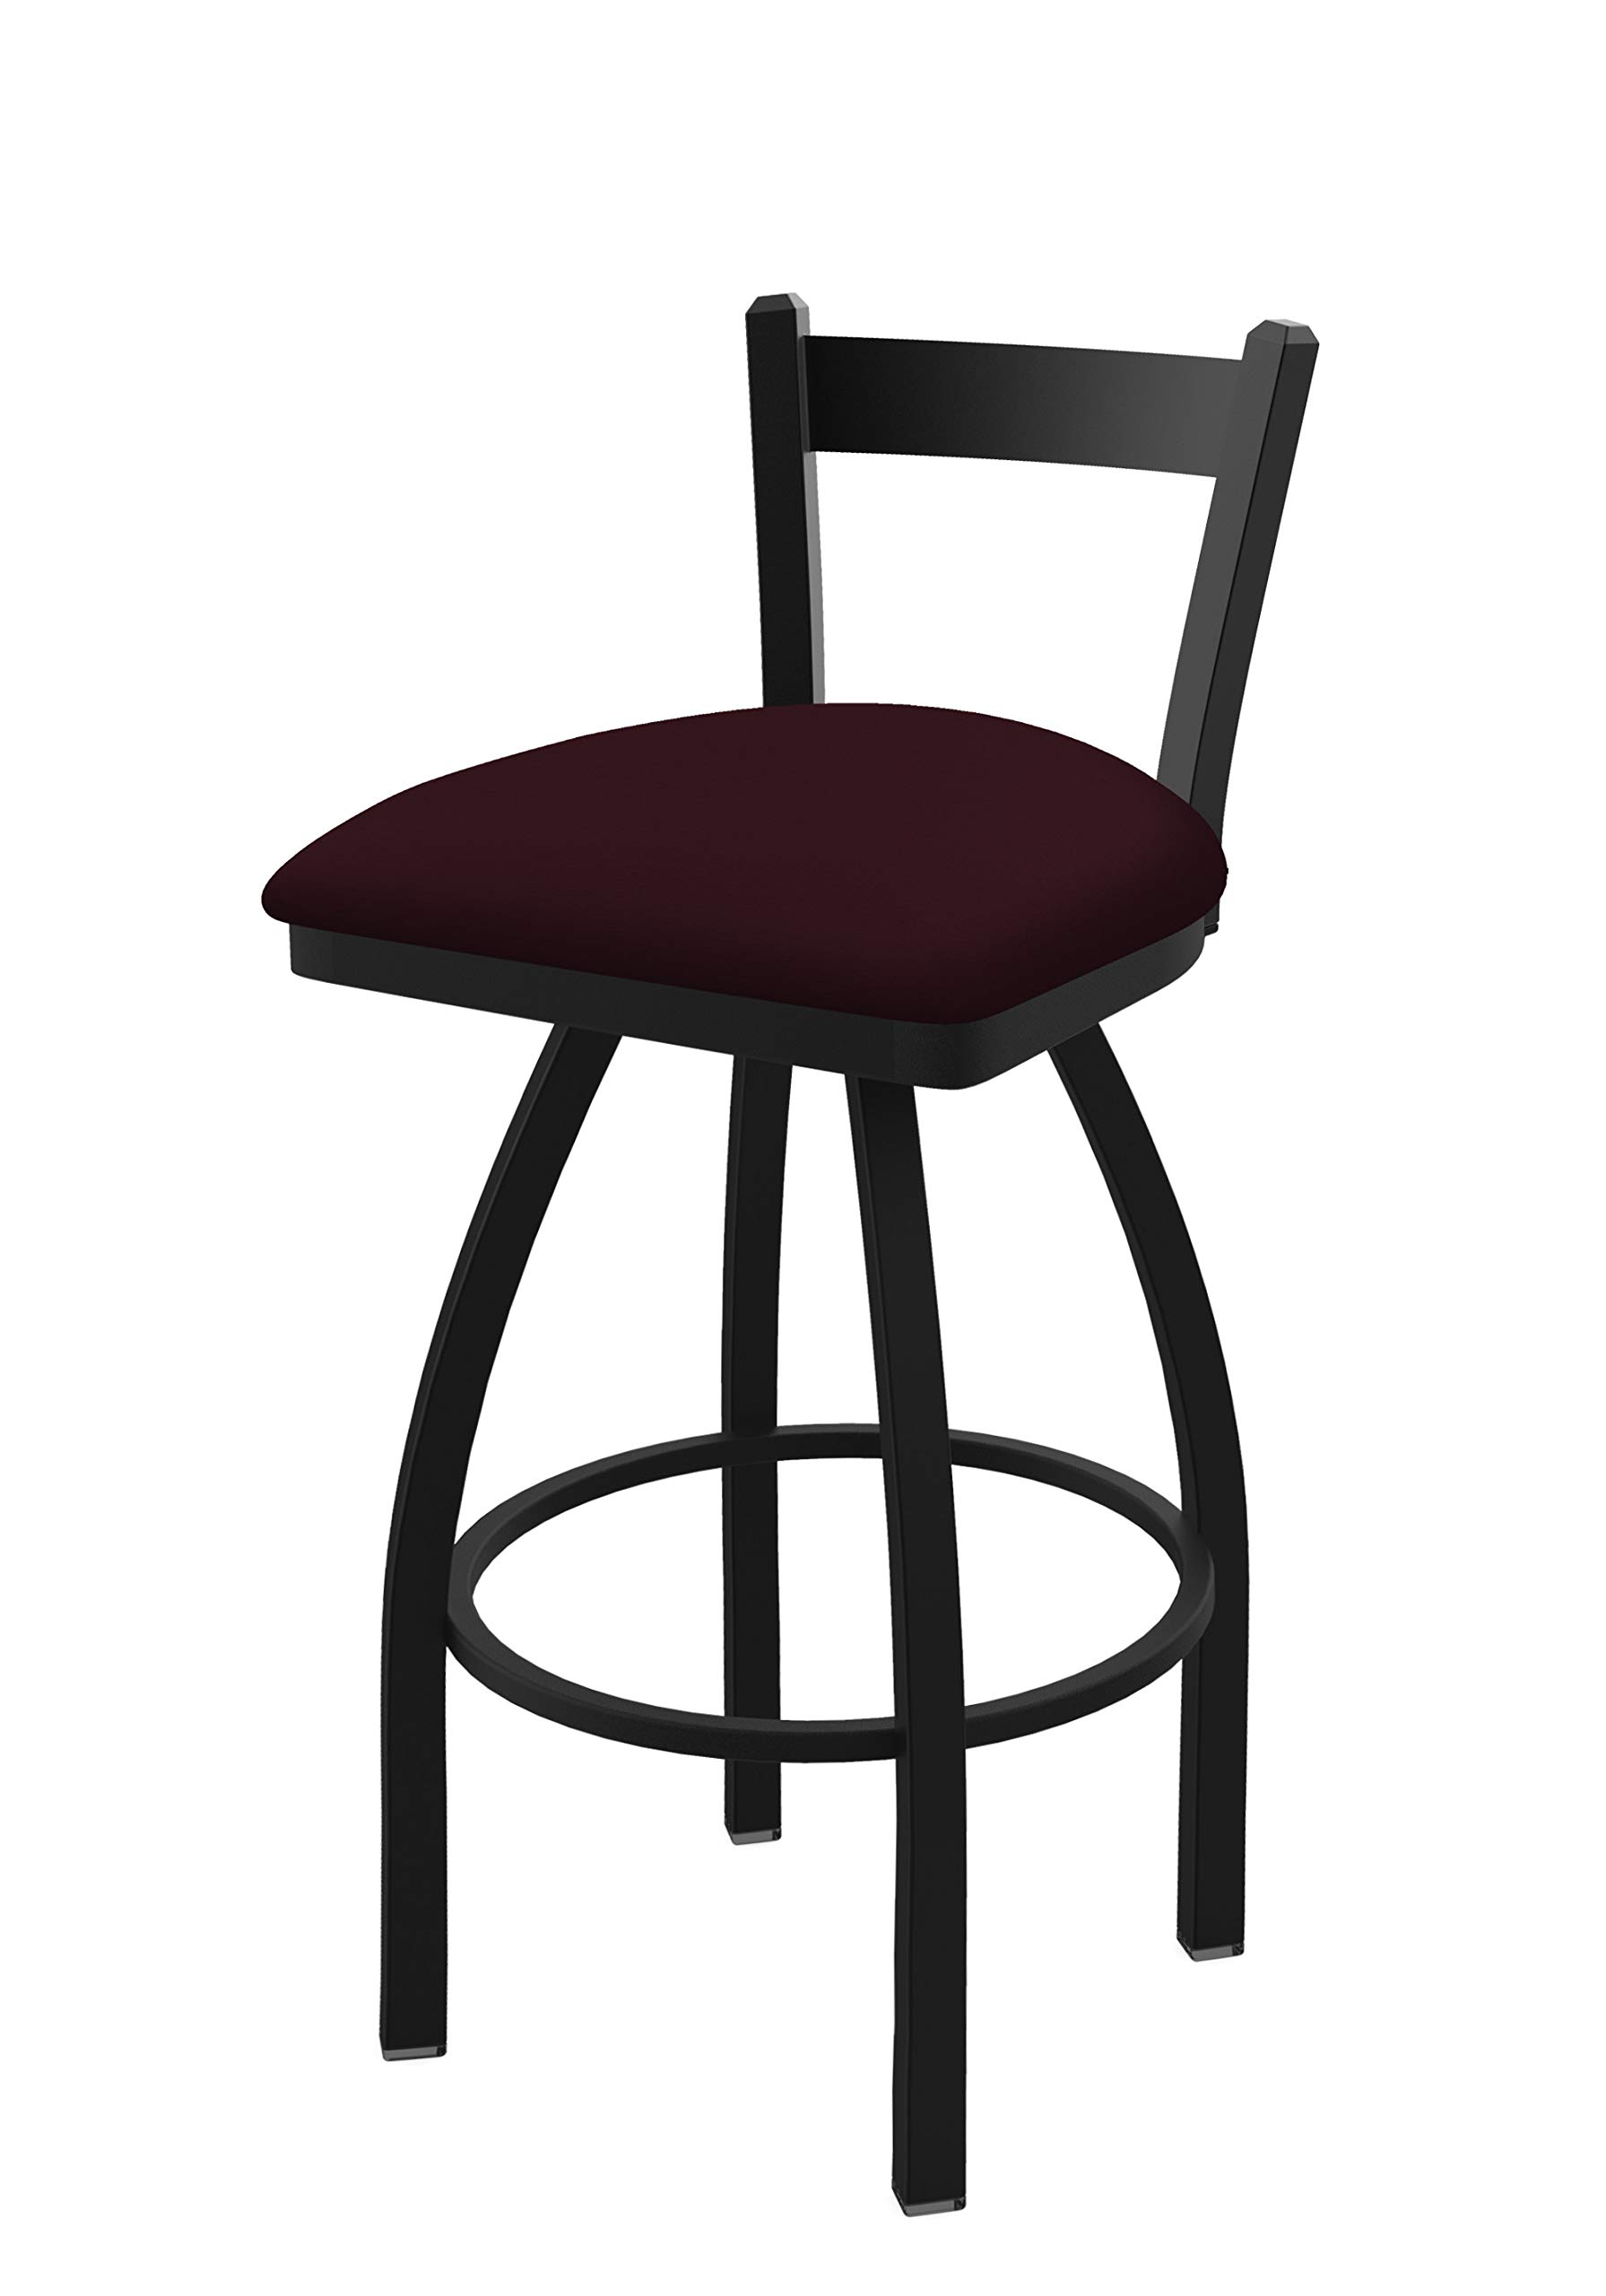 Holland Bar Stool Co. 82125BW005 821 Catalina 25'' Low Back Swivel Counter Black Wrinkle Finish and Canter Bordeaux Seat Bar Stool